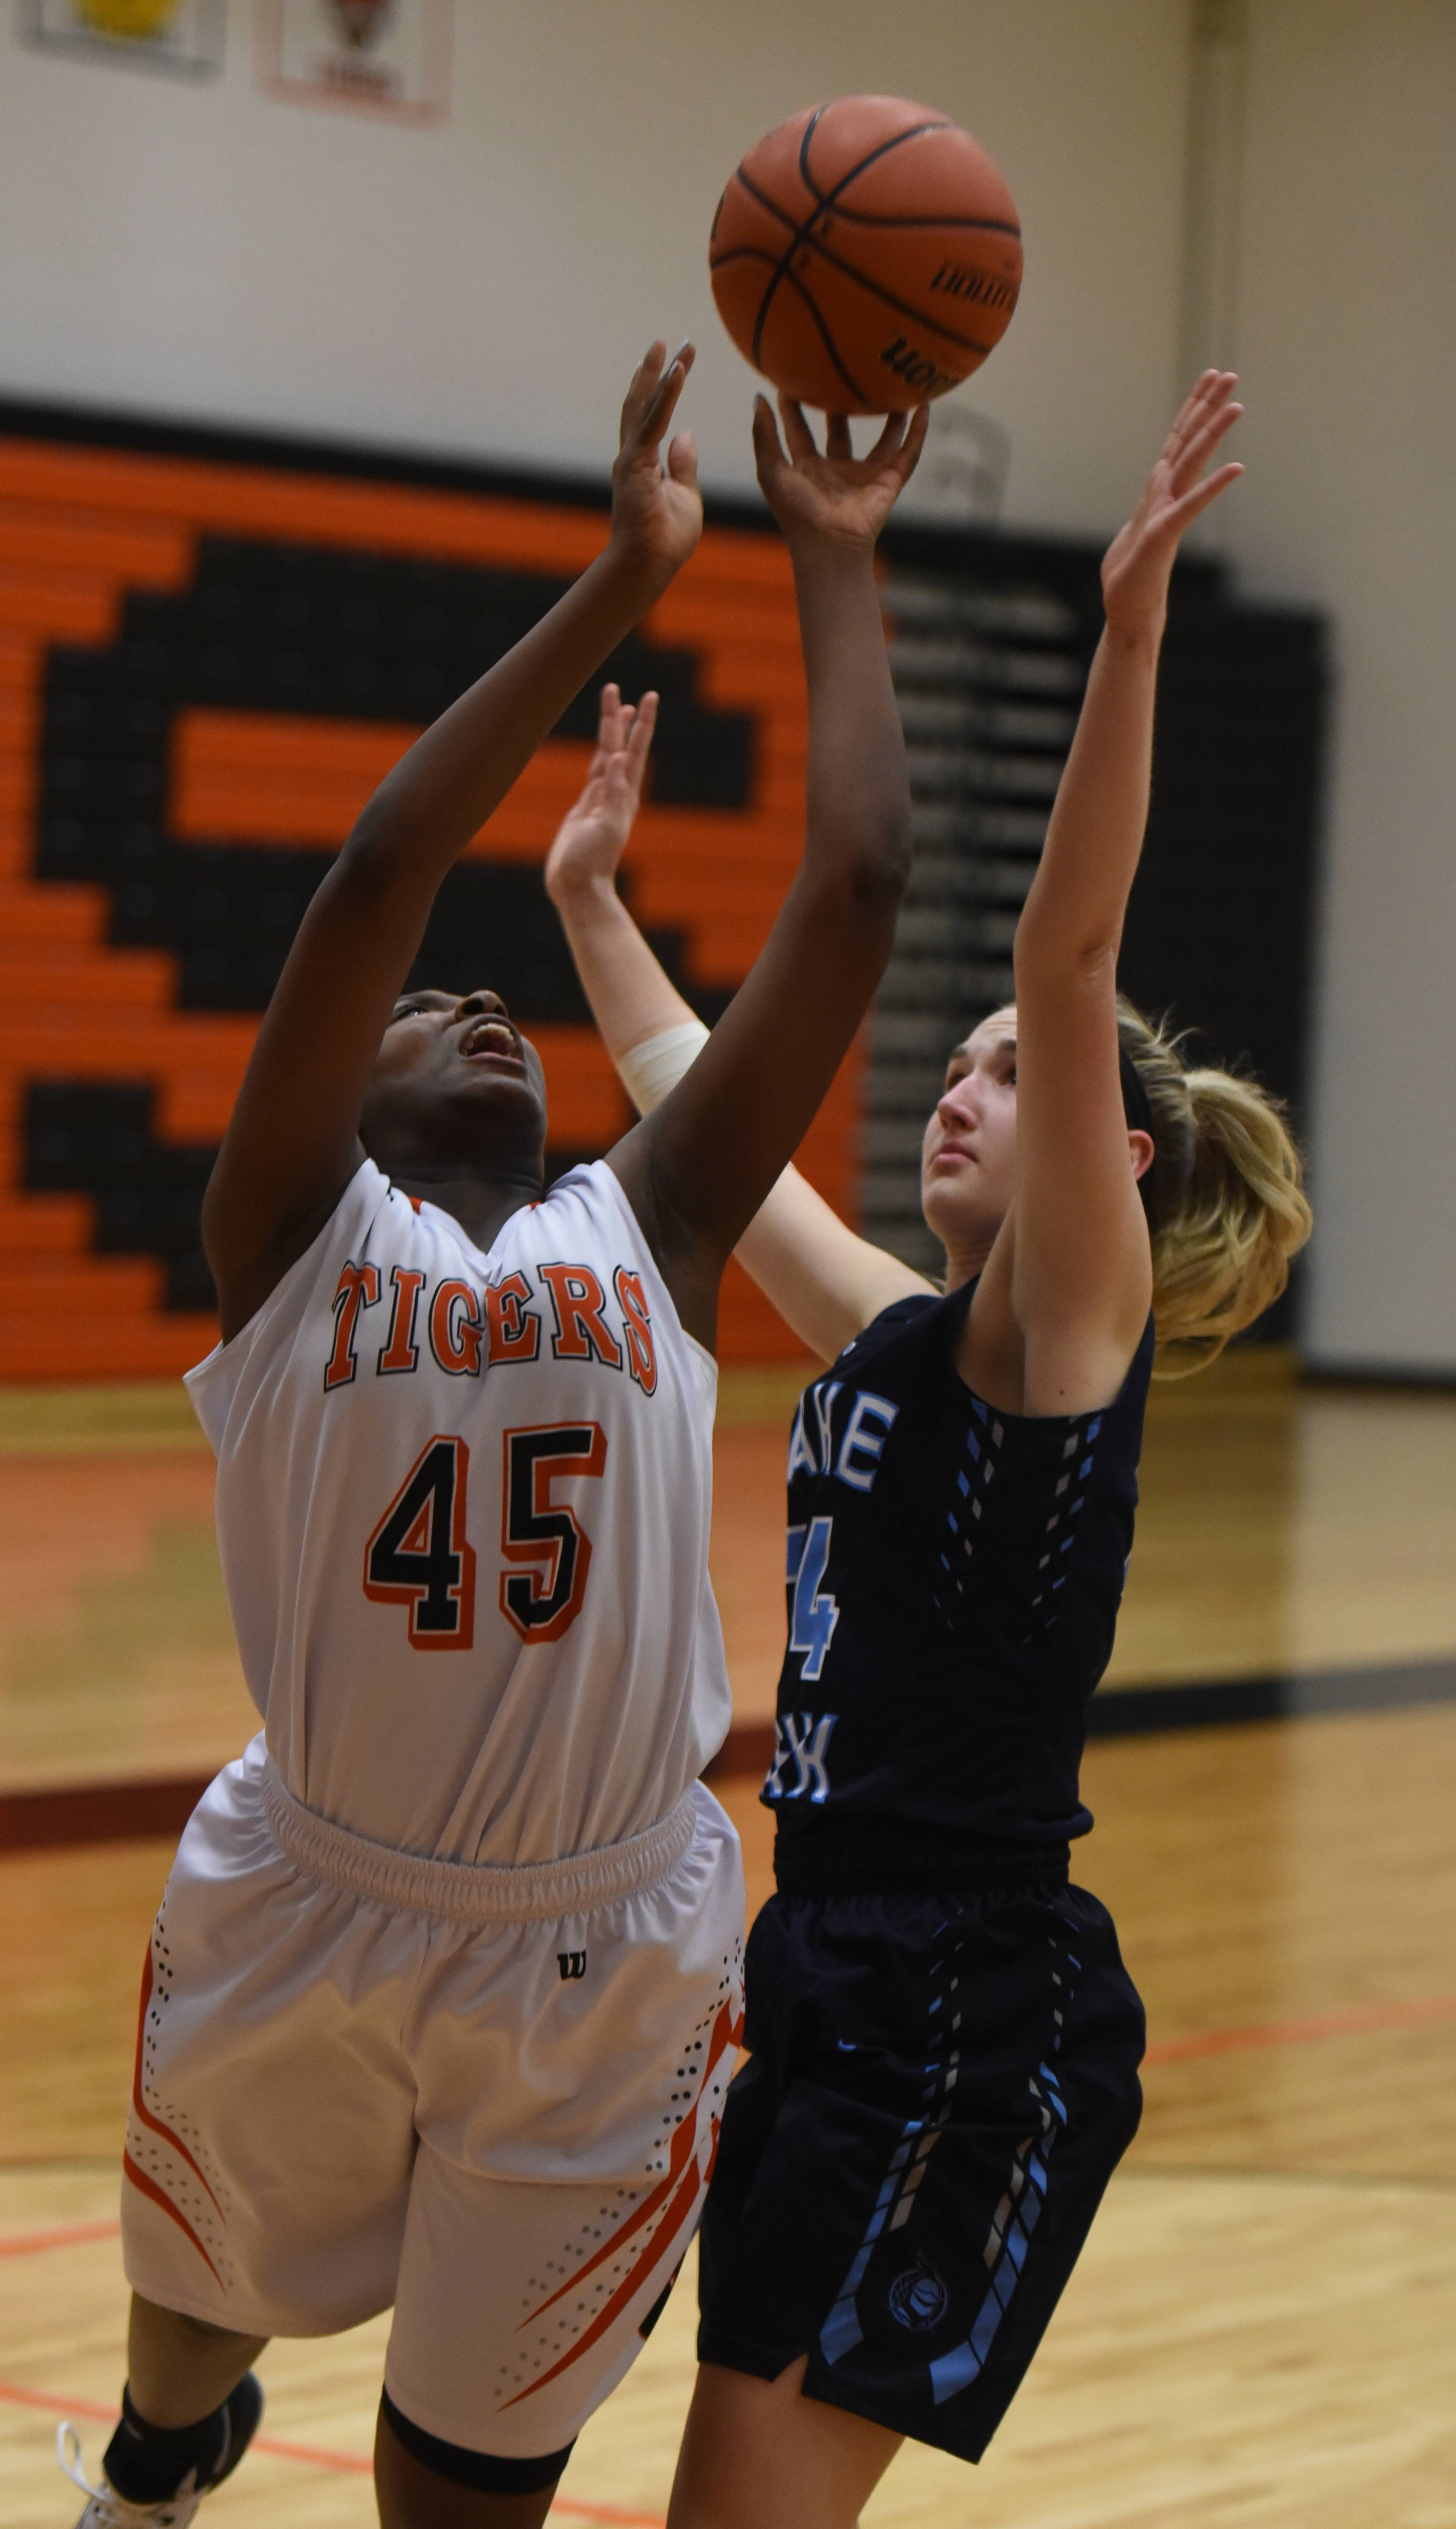 Wheaton Warrenville South's Jayla Johnson (45) and Lake Park Emily Golab (24) vie for a rebound during the Lake Park at WW South girls basketball game Tuesday.